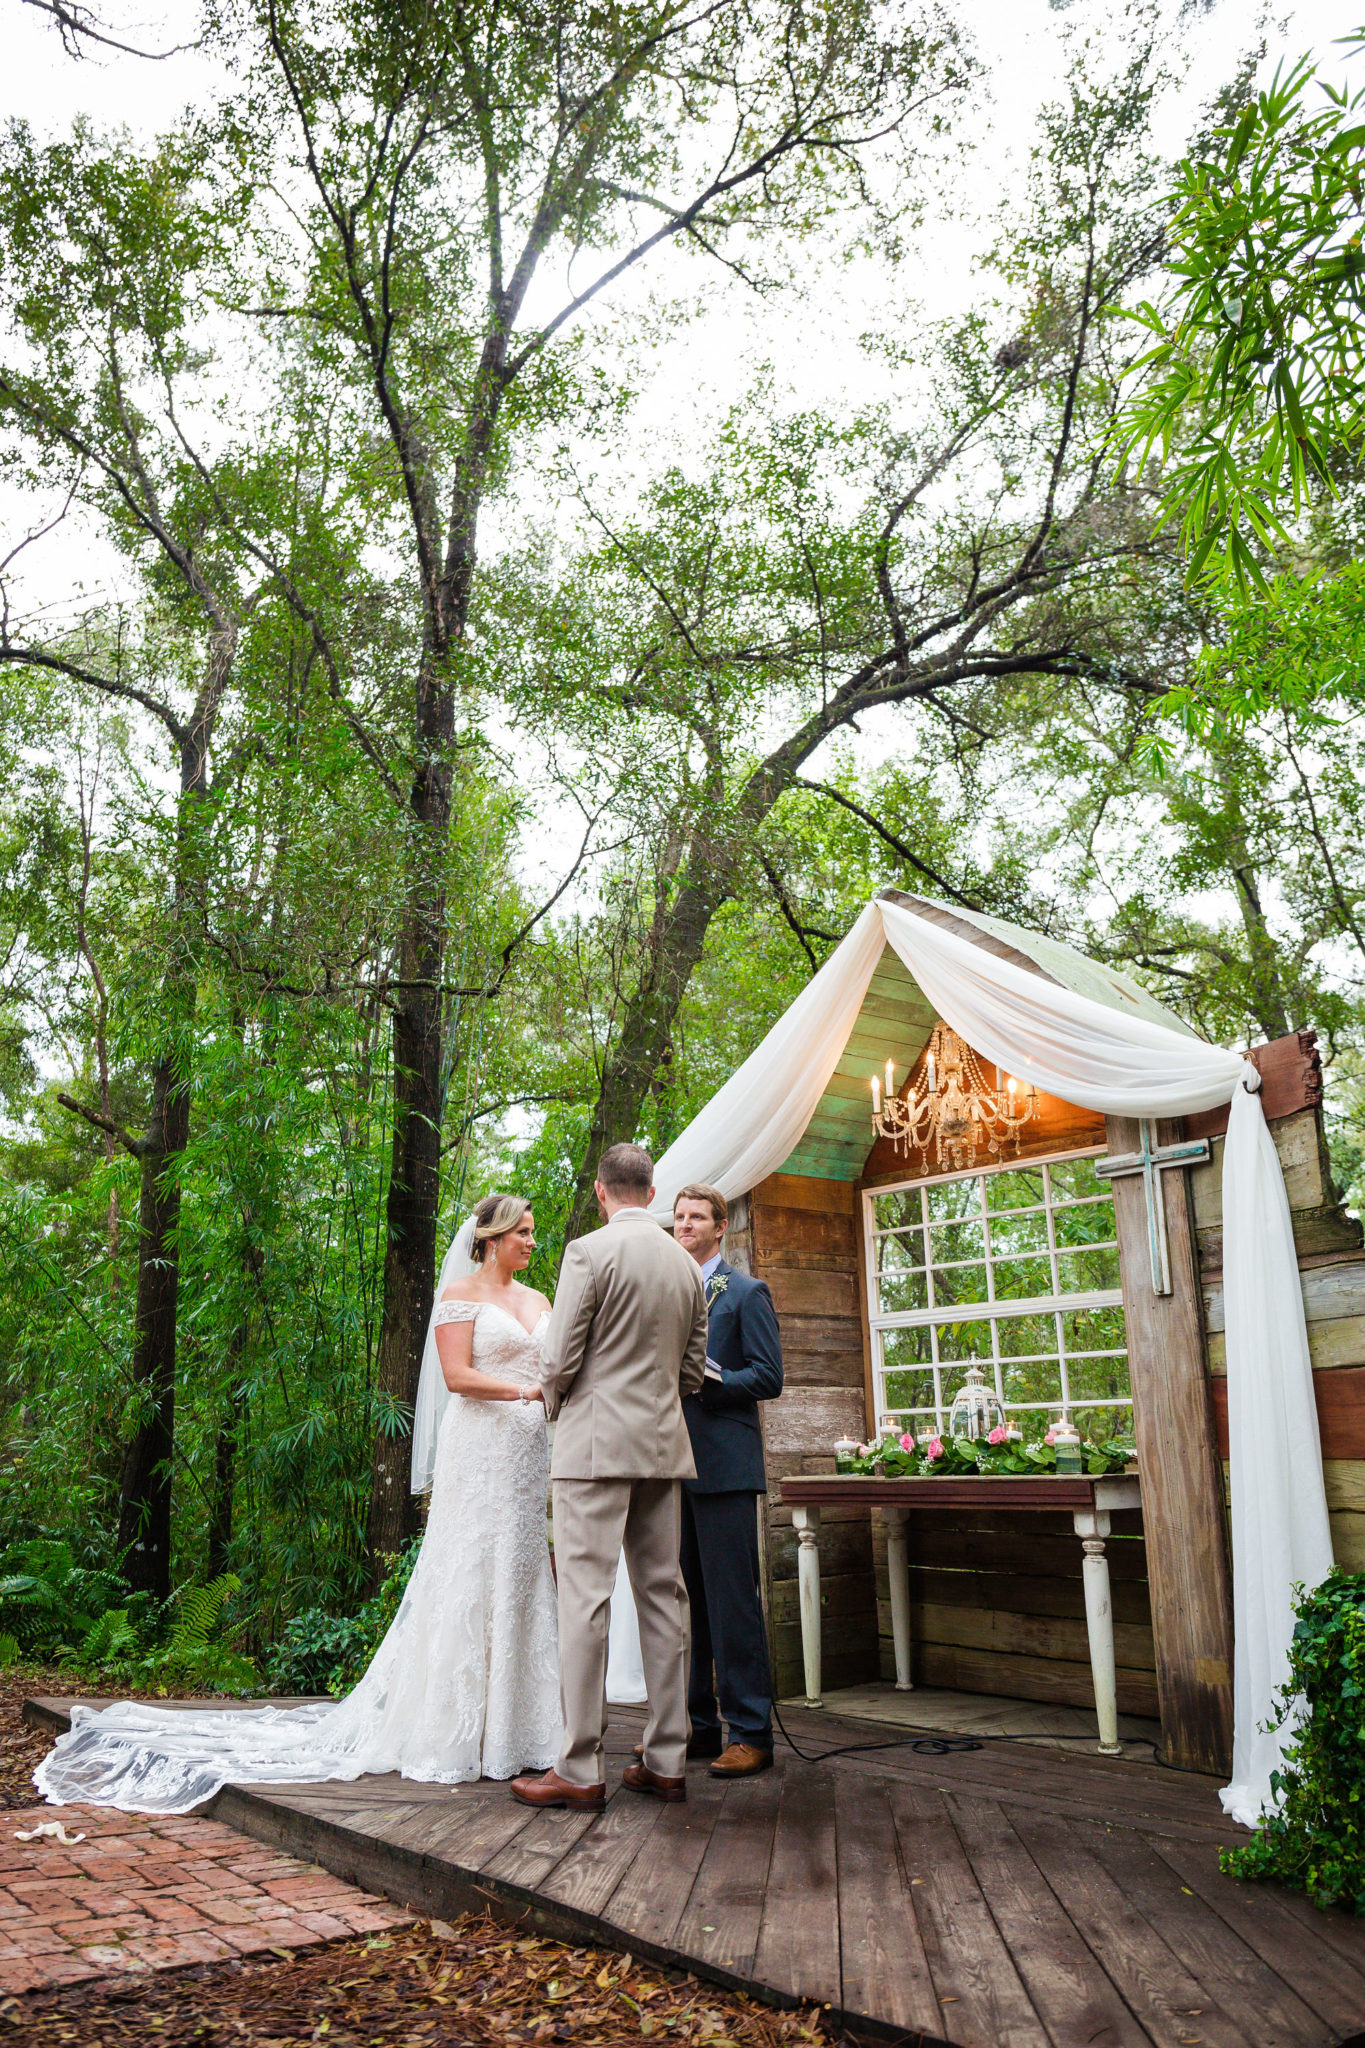 Beautiful natural canopy at Bridle Oaks outdoor ceremony area.